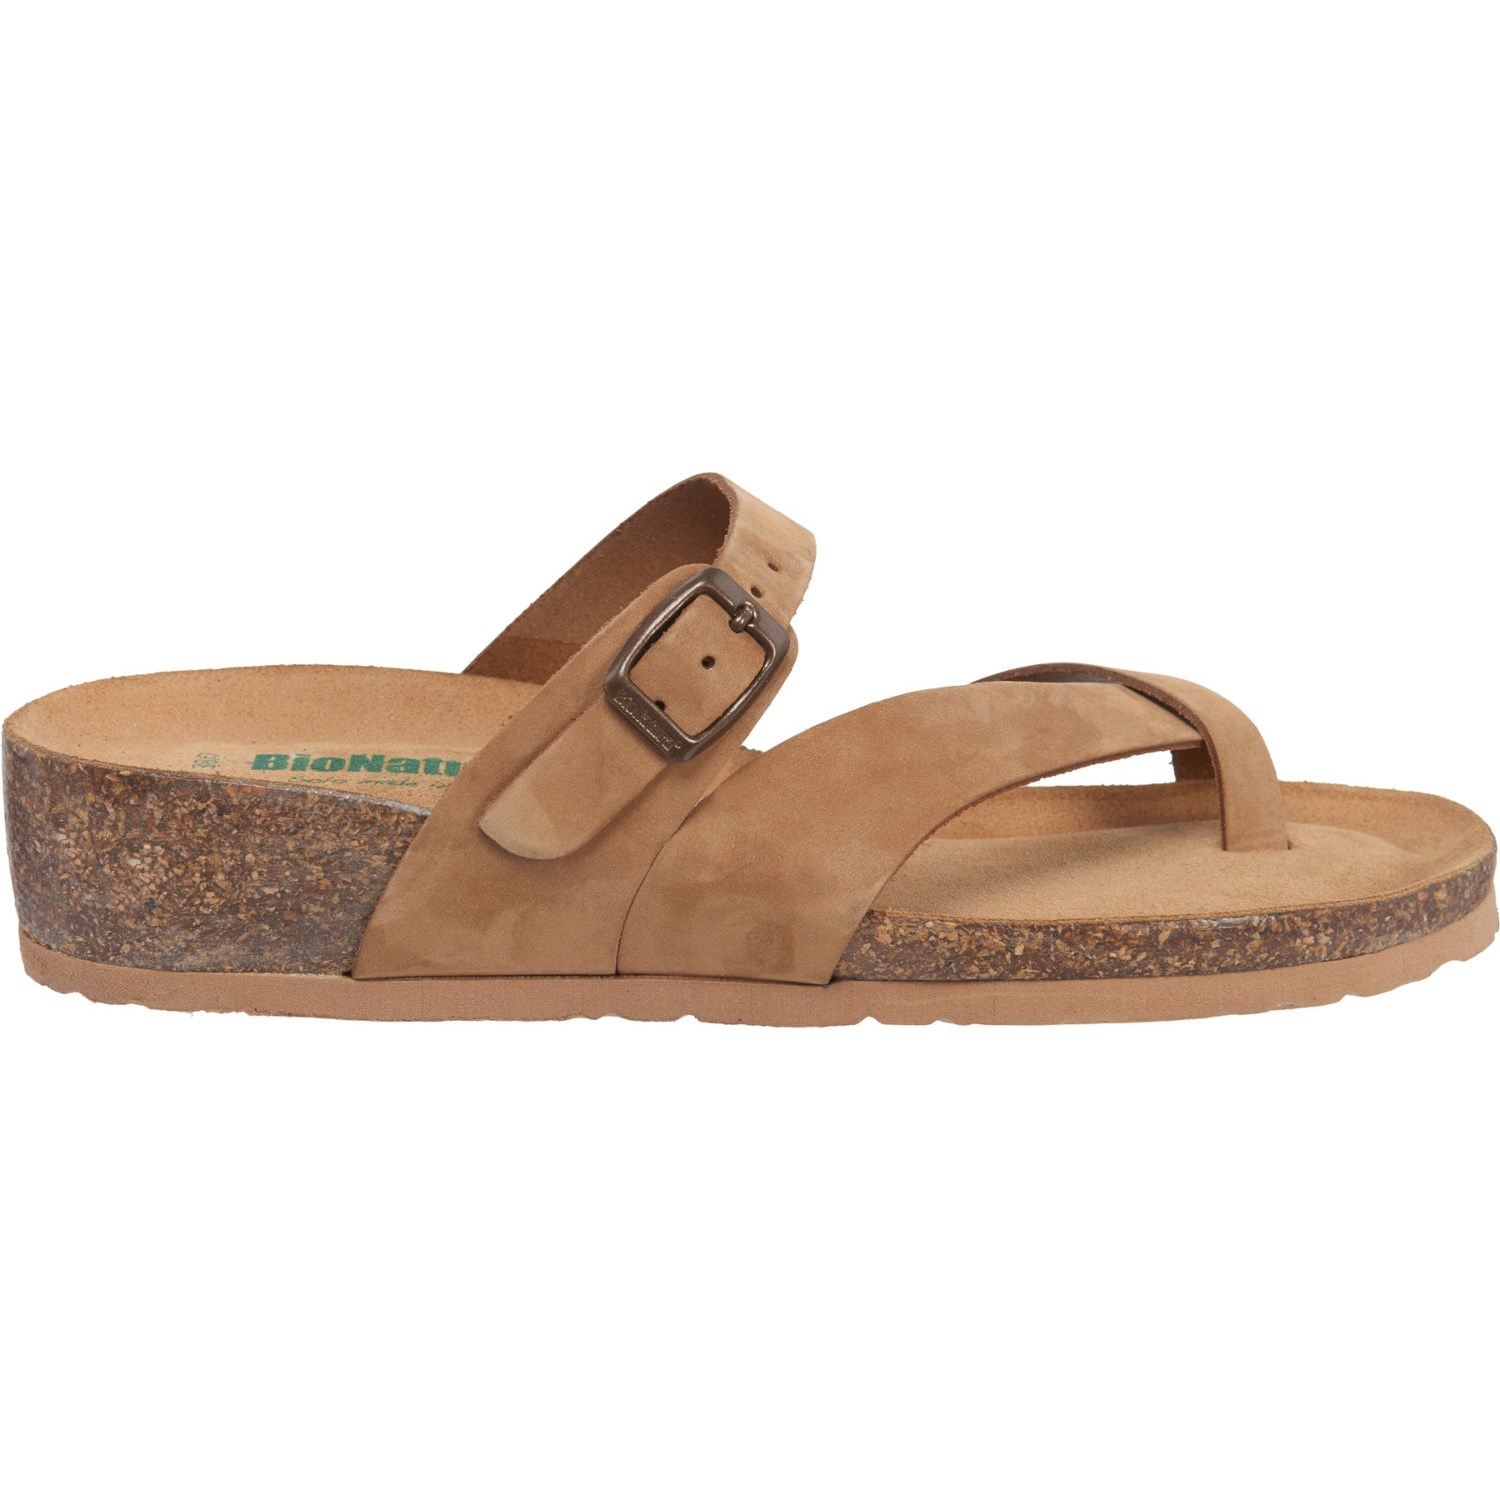 2dbb0e9b798f BioNatura Made in Italy Toe Flip-Flops (For Women) - Save 41%